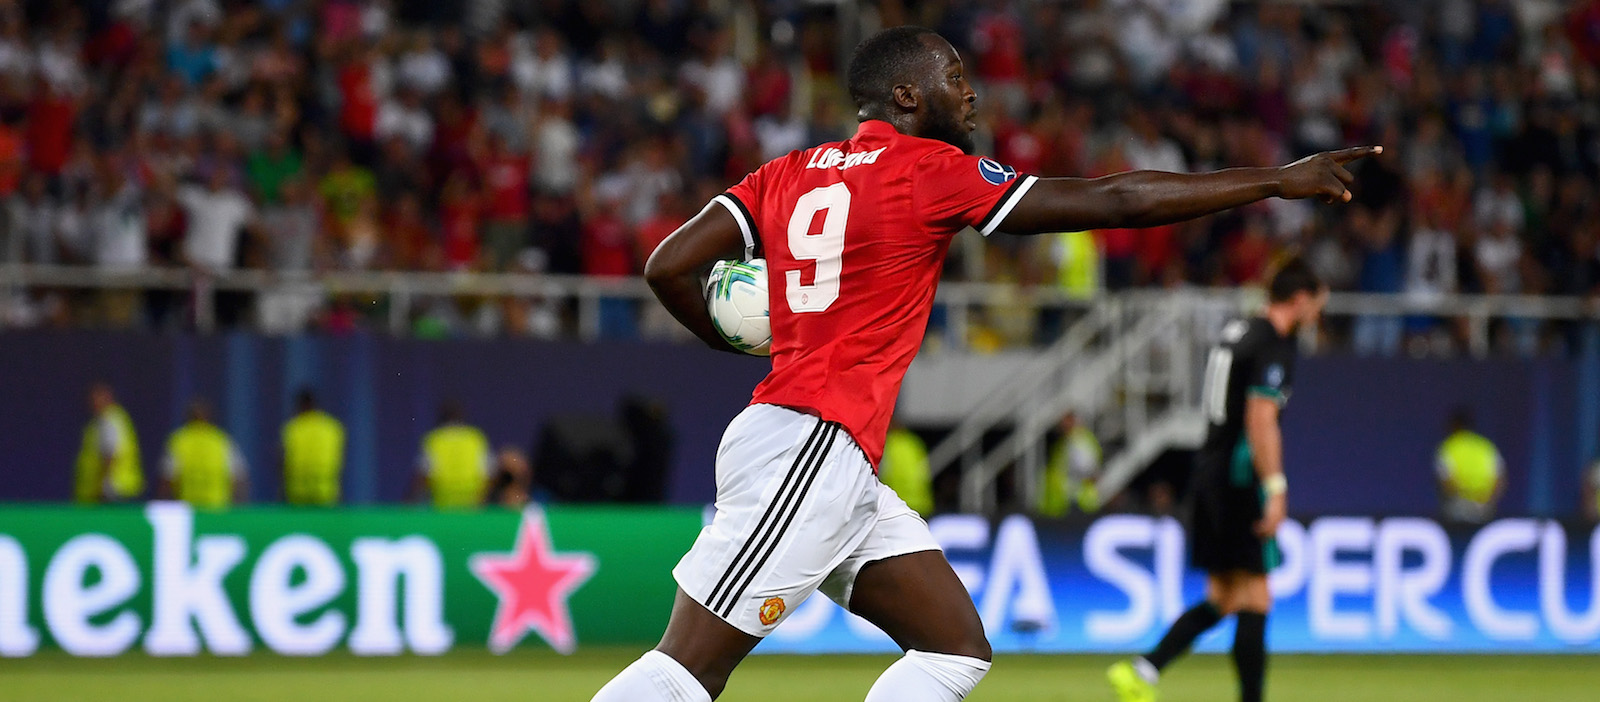 Jamie Carragher believes Romelu Lukaku will make Manchester United title contenders this season